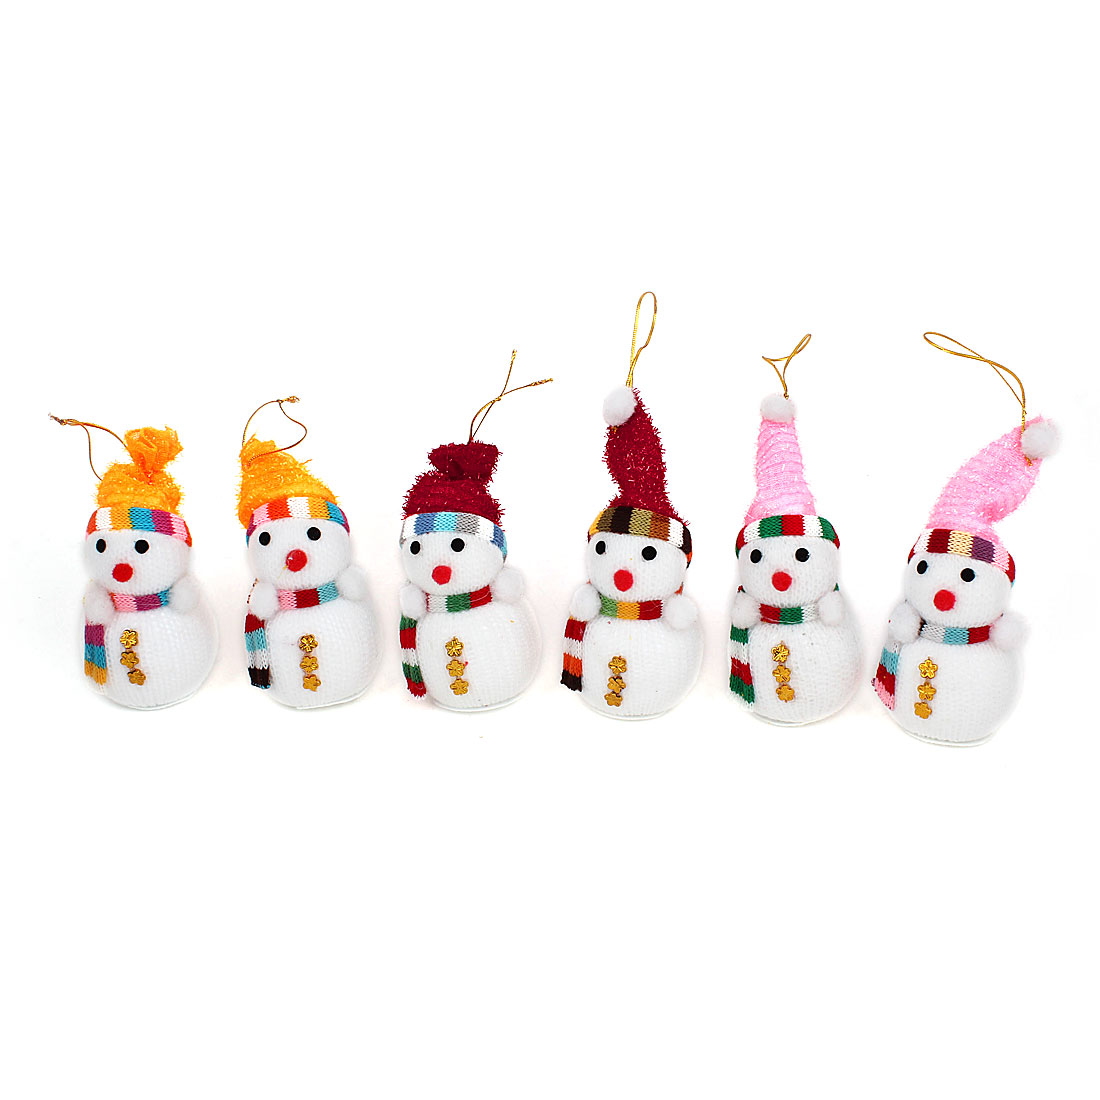 6pcs Scarf Cap Accent Xmas Snowman Pendant White for Christmas Tree Dangling Decor